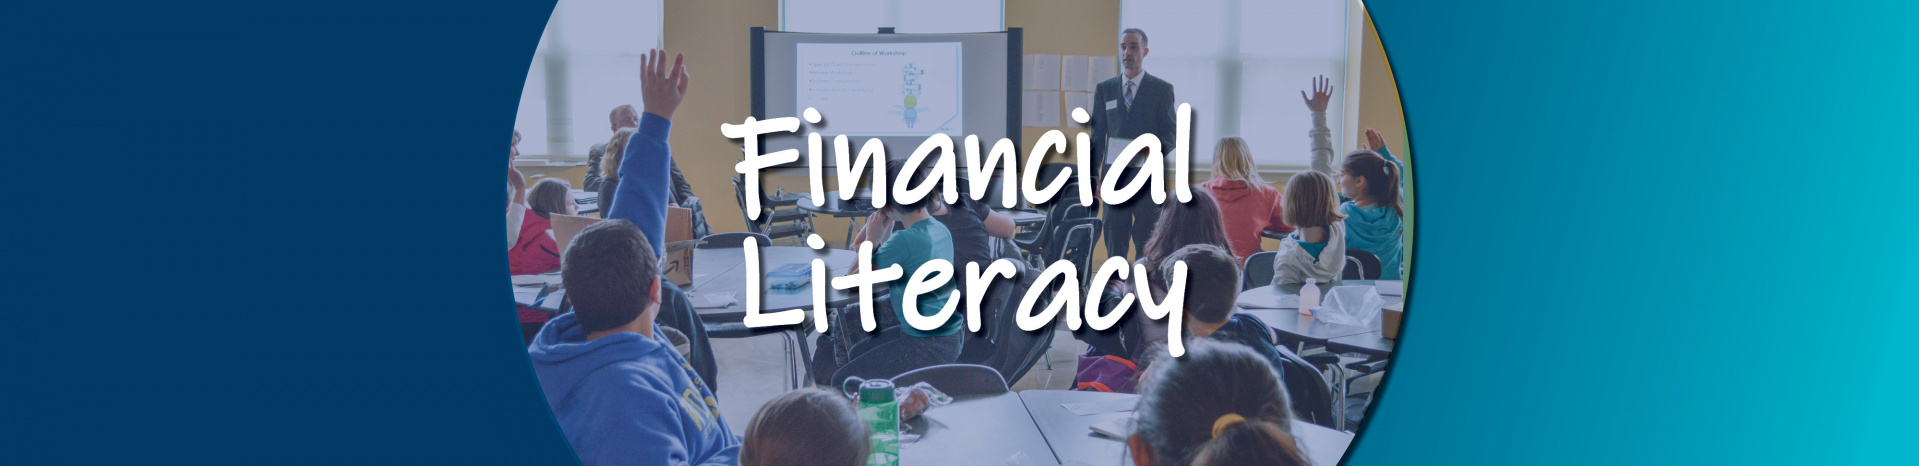 Financial Literacy Class image